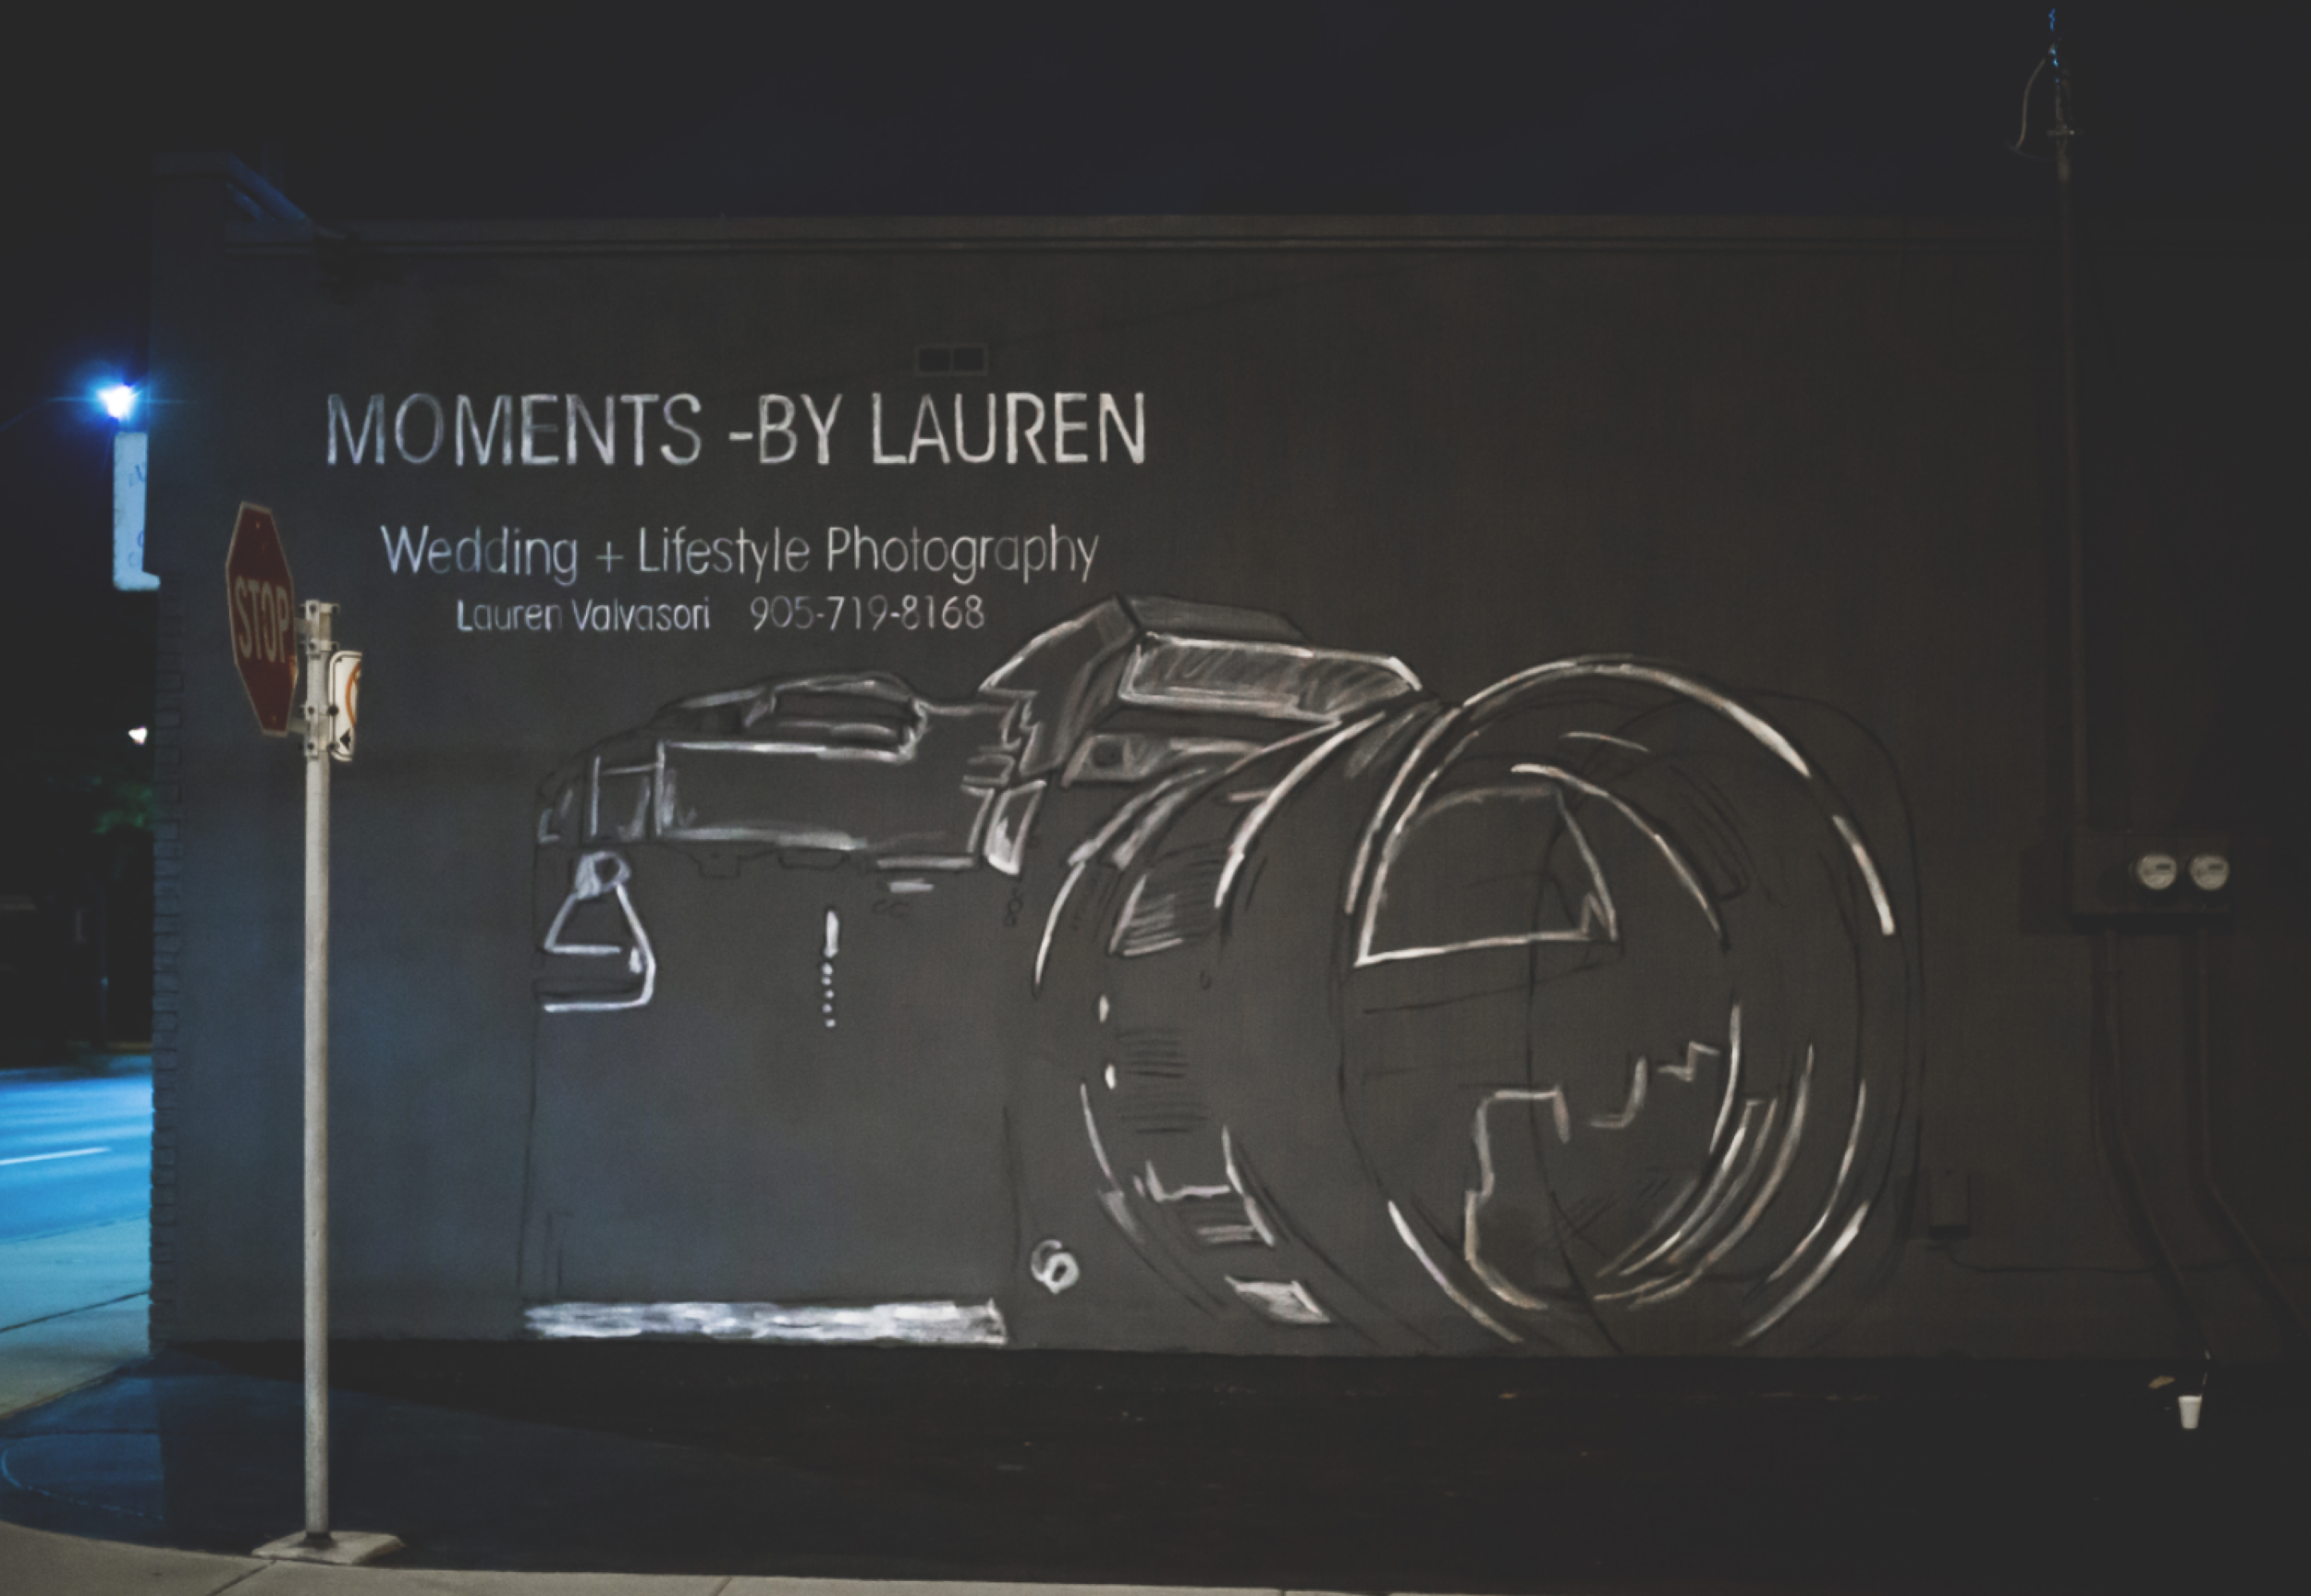 Moments-by-Lauren-Camera-Mural-Claire-Hall-Design-Photo-4.png